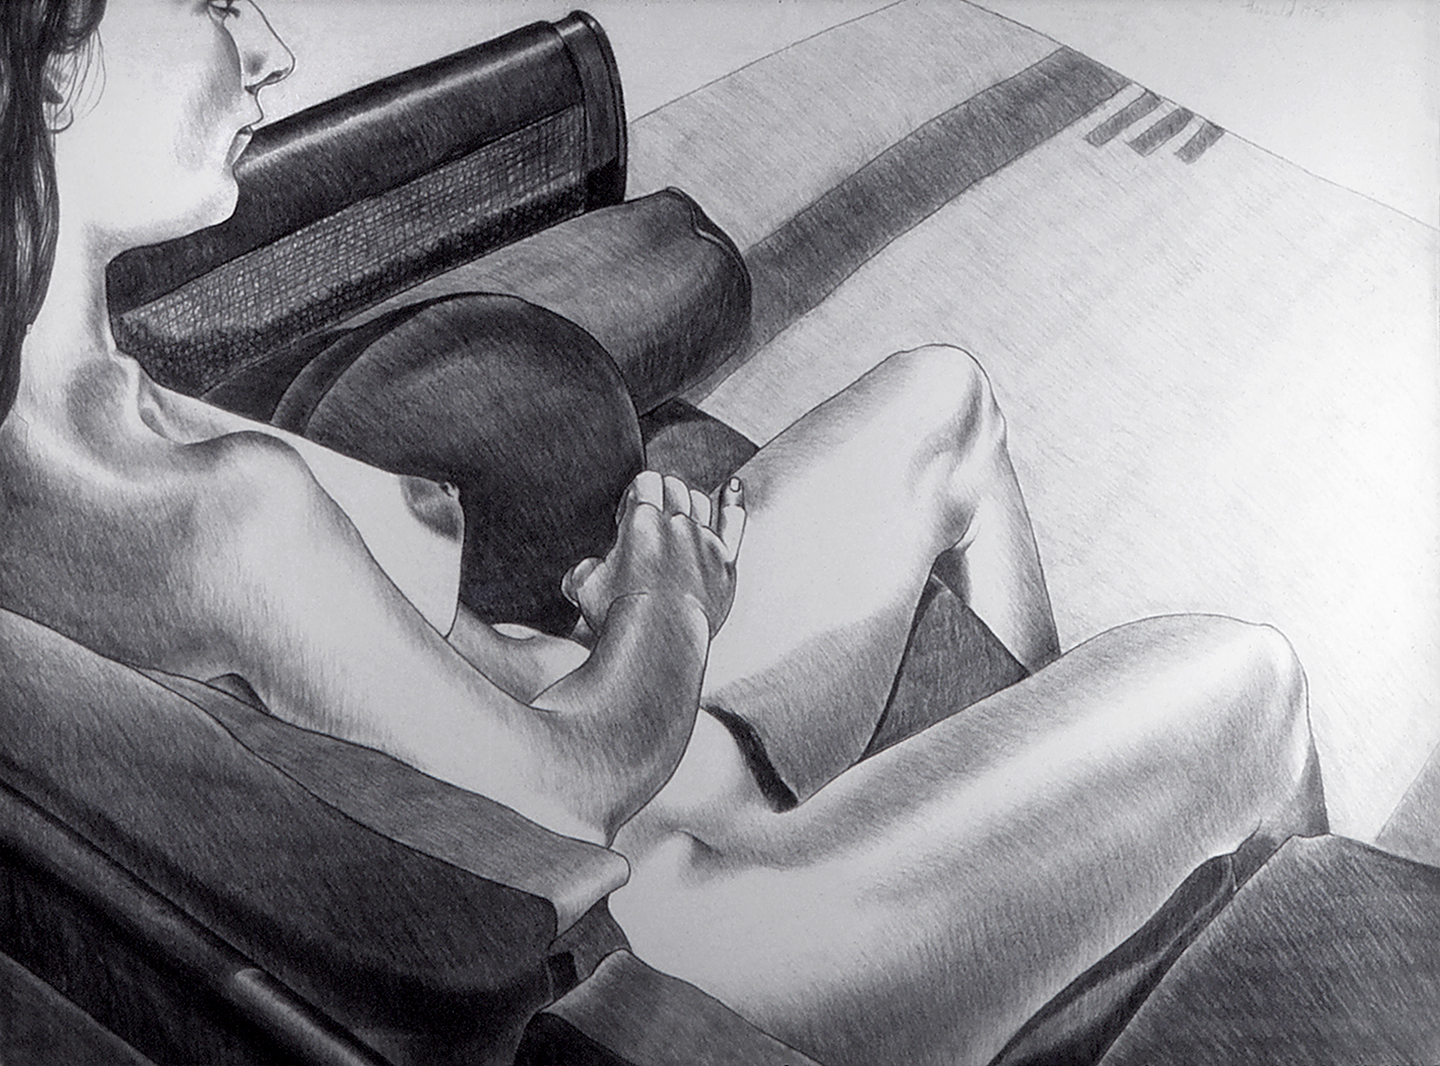 Debbie on Brown Sofa, 1975  Charcoal on Rives